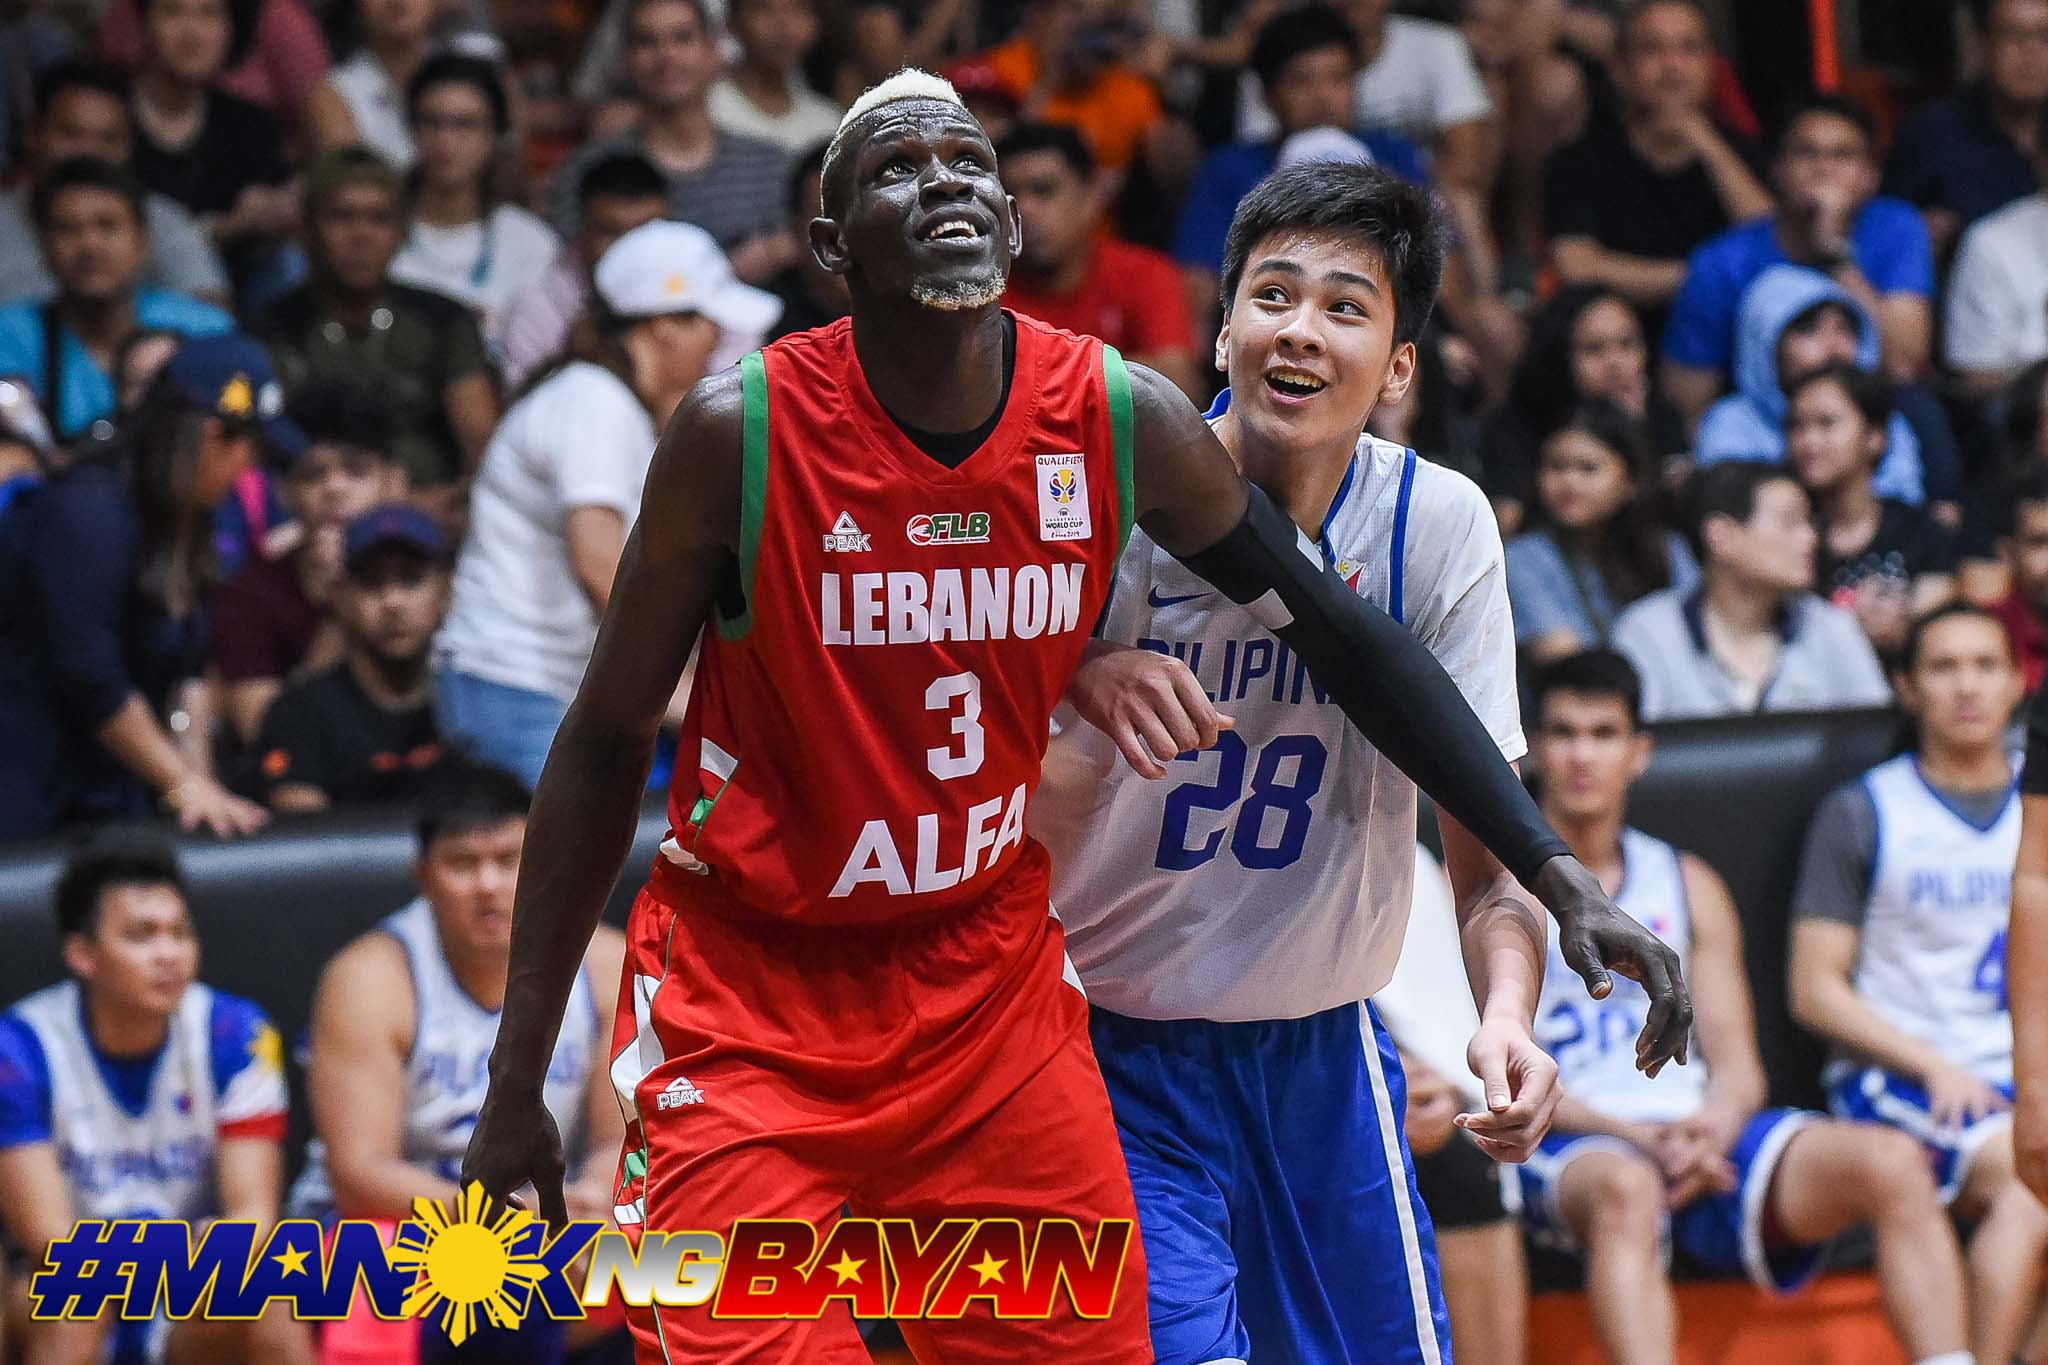 Tiebreaker Times Kai Sotto regrets missed poster, but fulfilled to play with Gilas seniors 2019 FIBA World Cup Qualifiers Basketball Gilas Pilipinas News  Kai Sotto Gilas Tune-up Gilas Elite 2019 FIBA World Cup Qualifiers